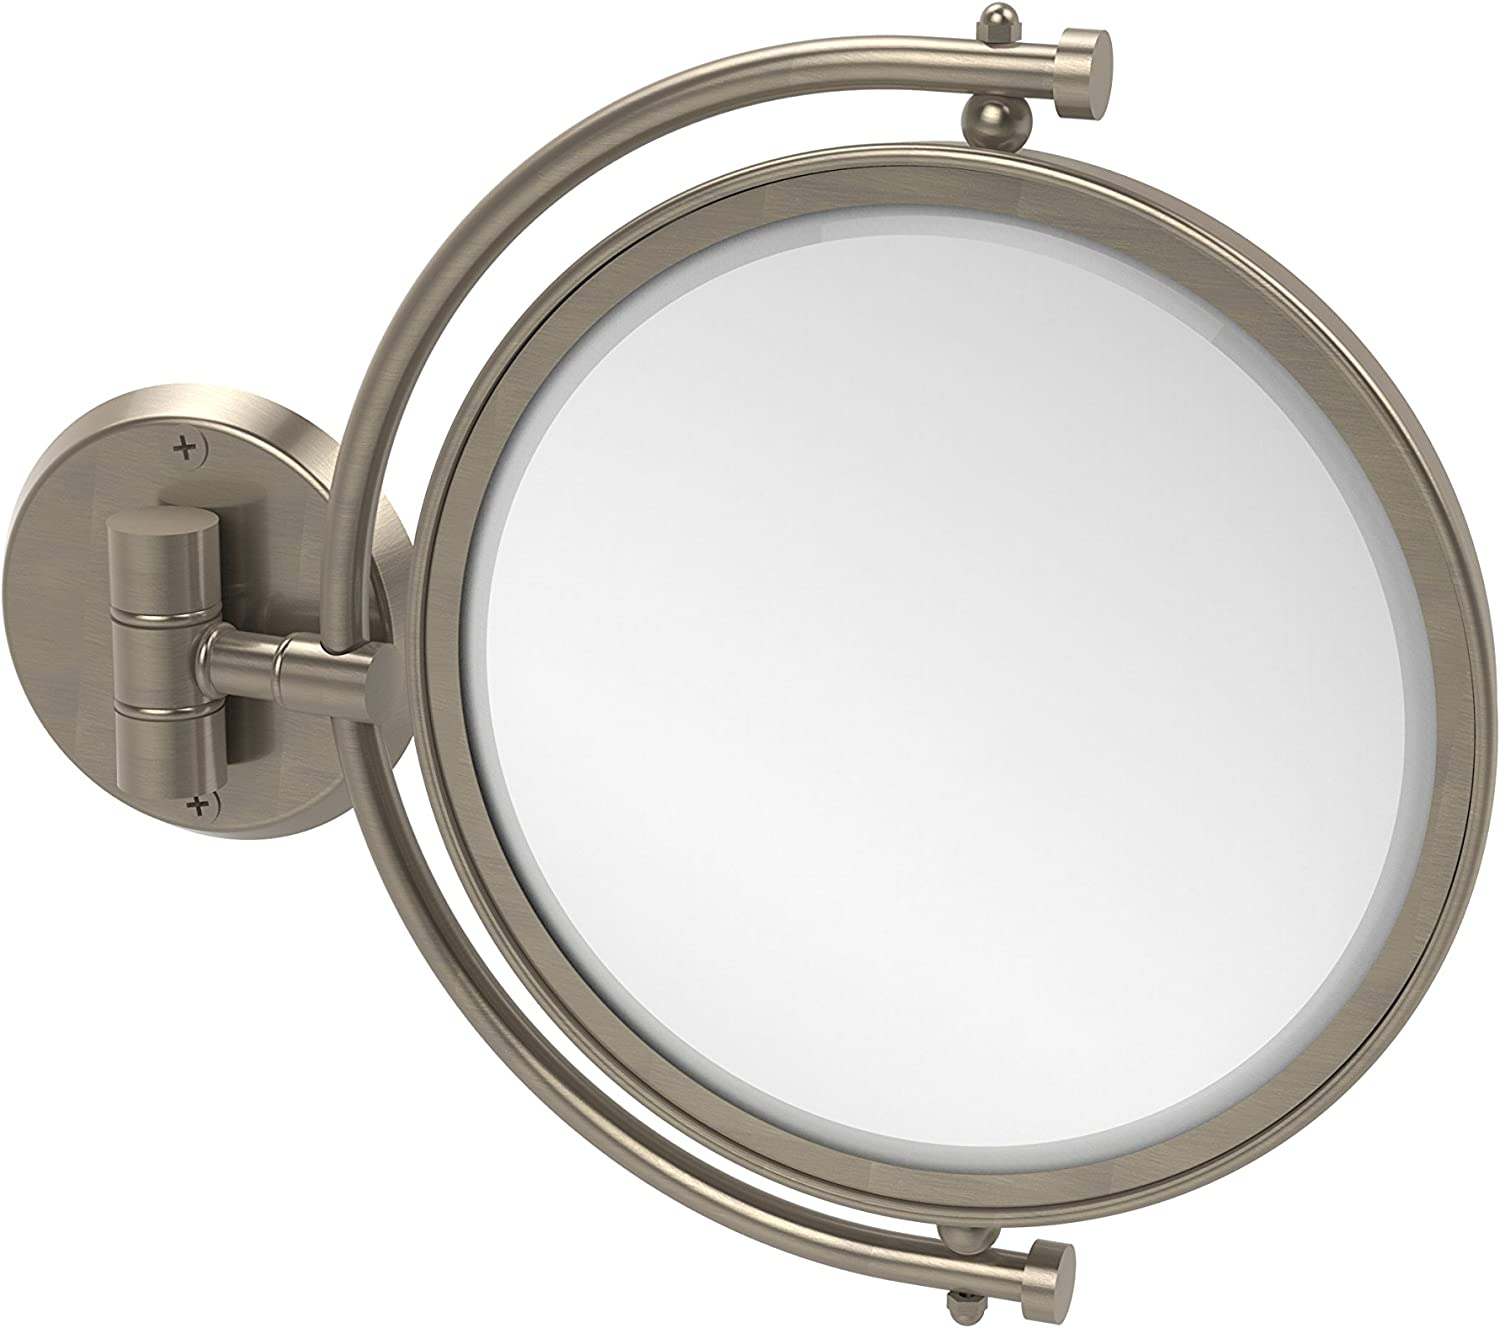 Allied Brass WM-4 2X-Pew 8-Inch Mirror with 2X Magnification Extends 7-Inch, Antique Pewter